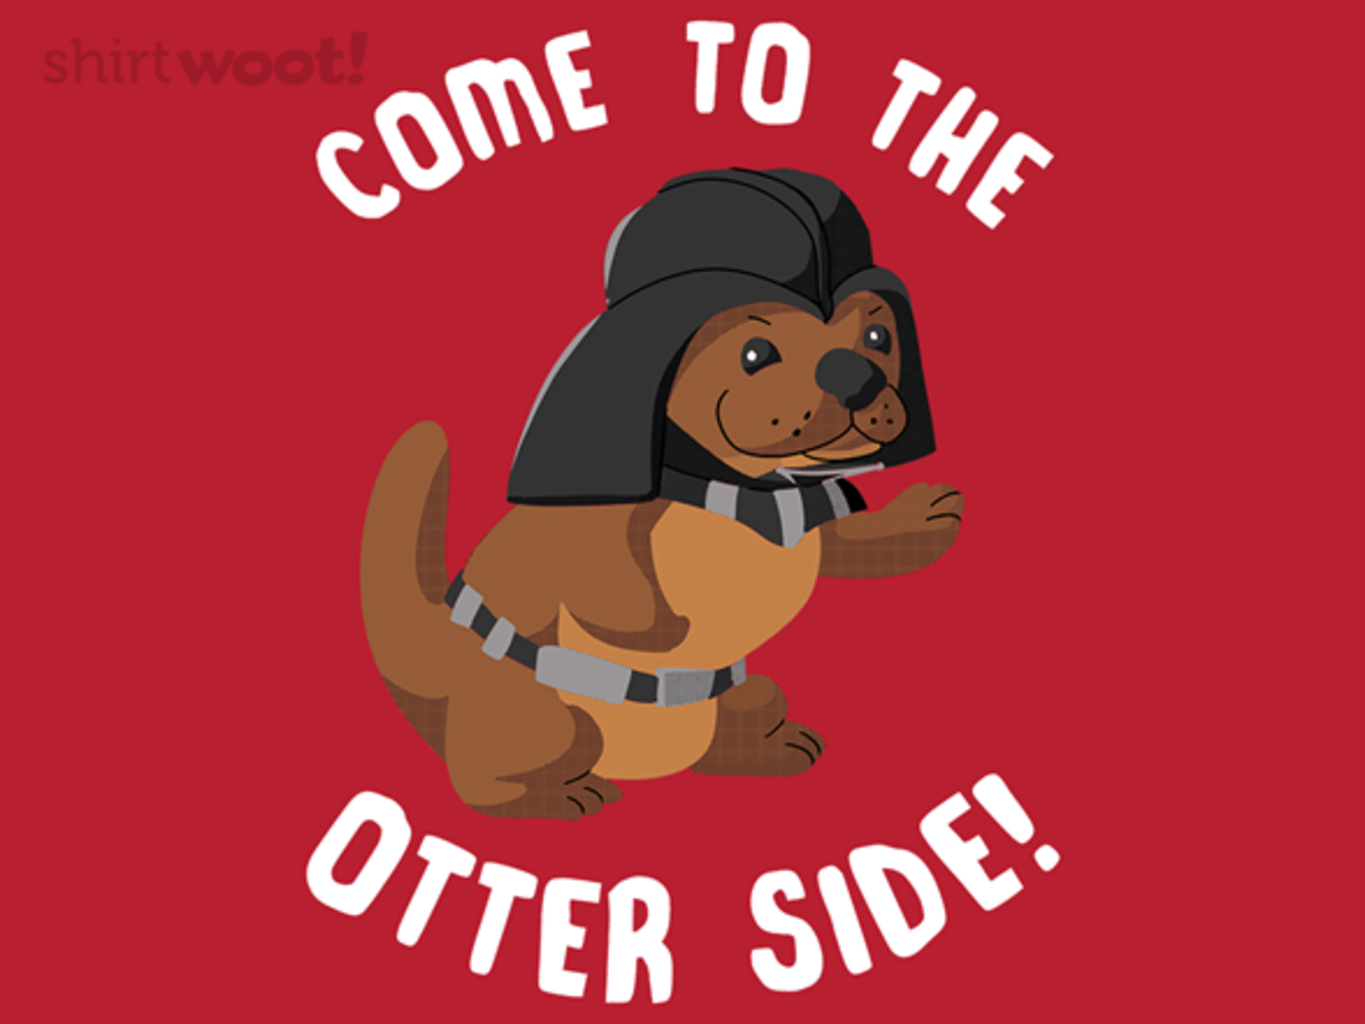 Woot!: The Otter Side